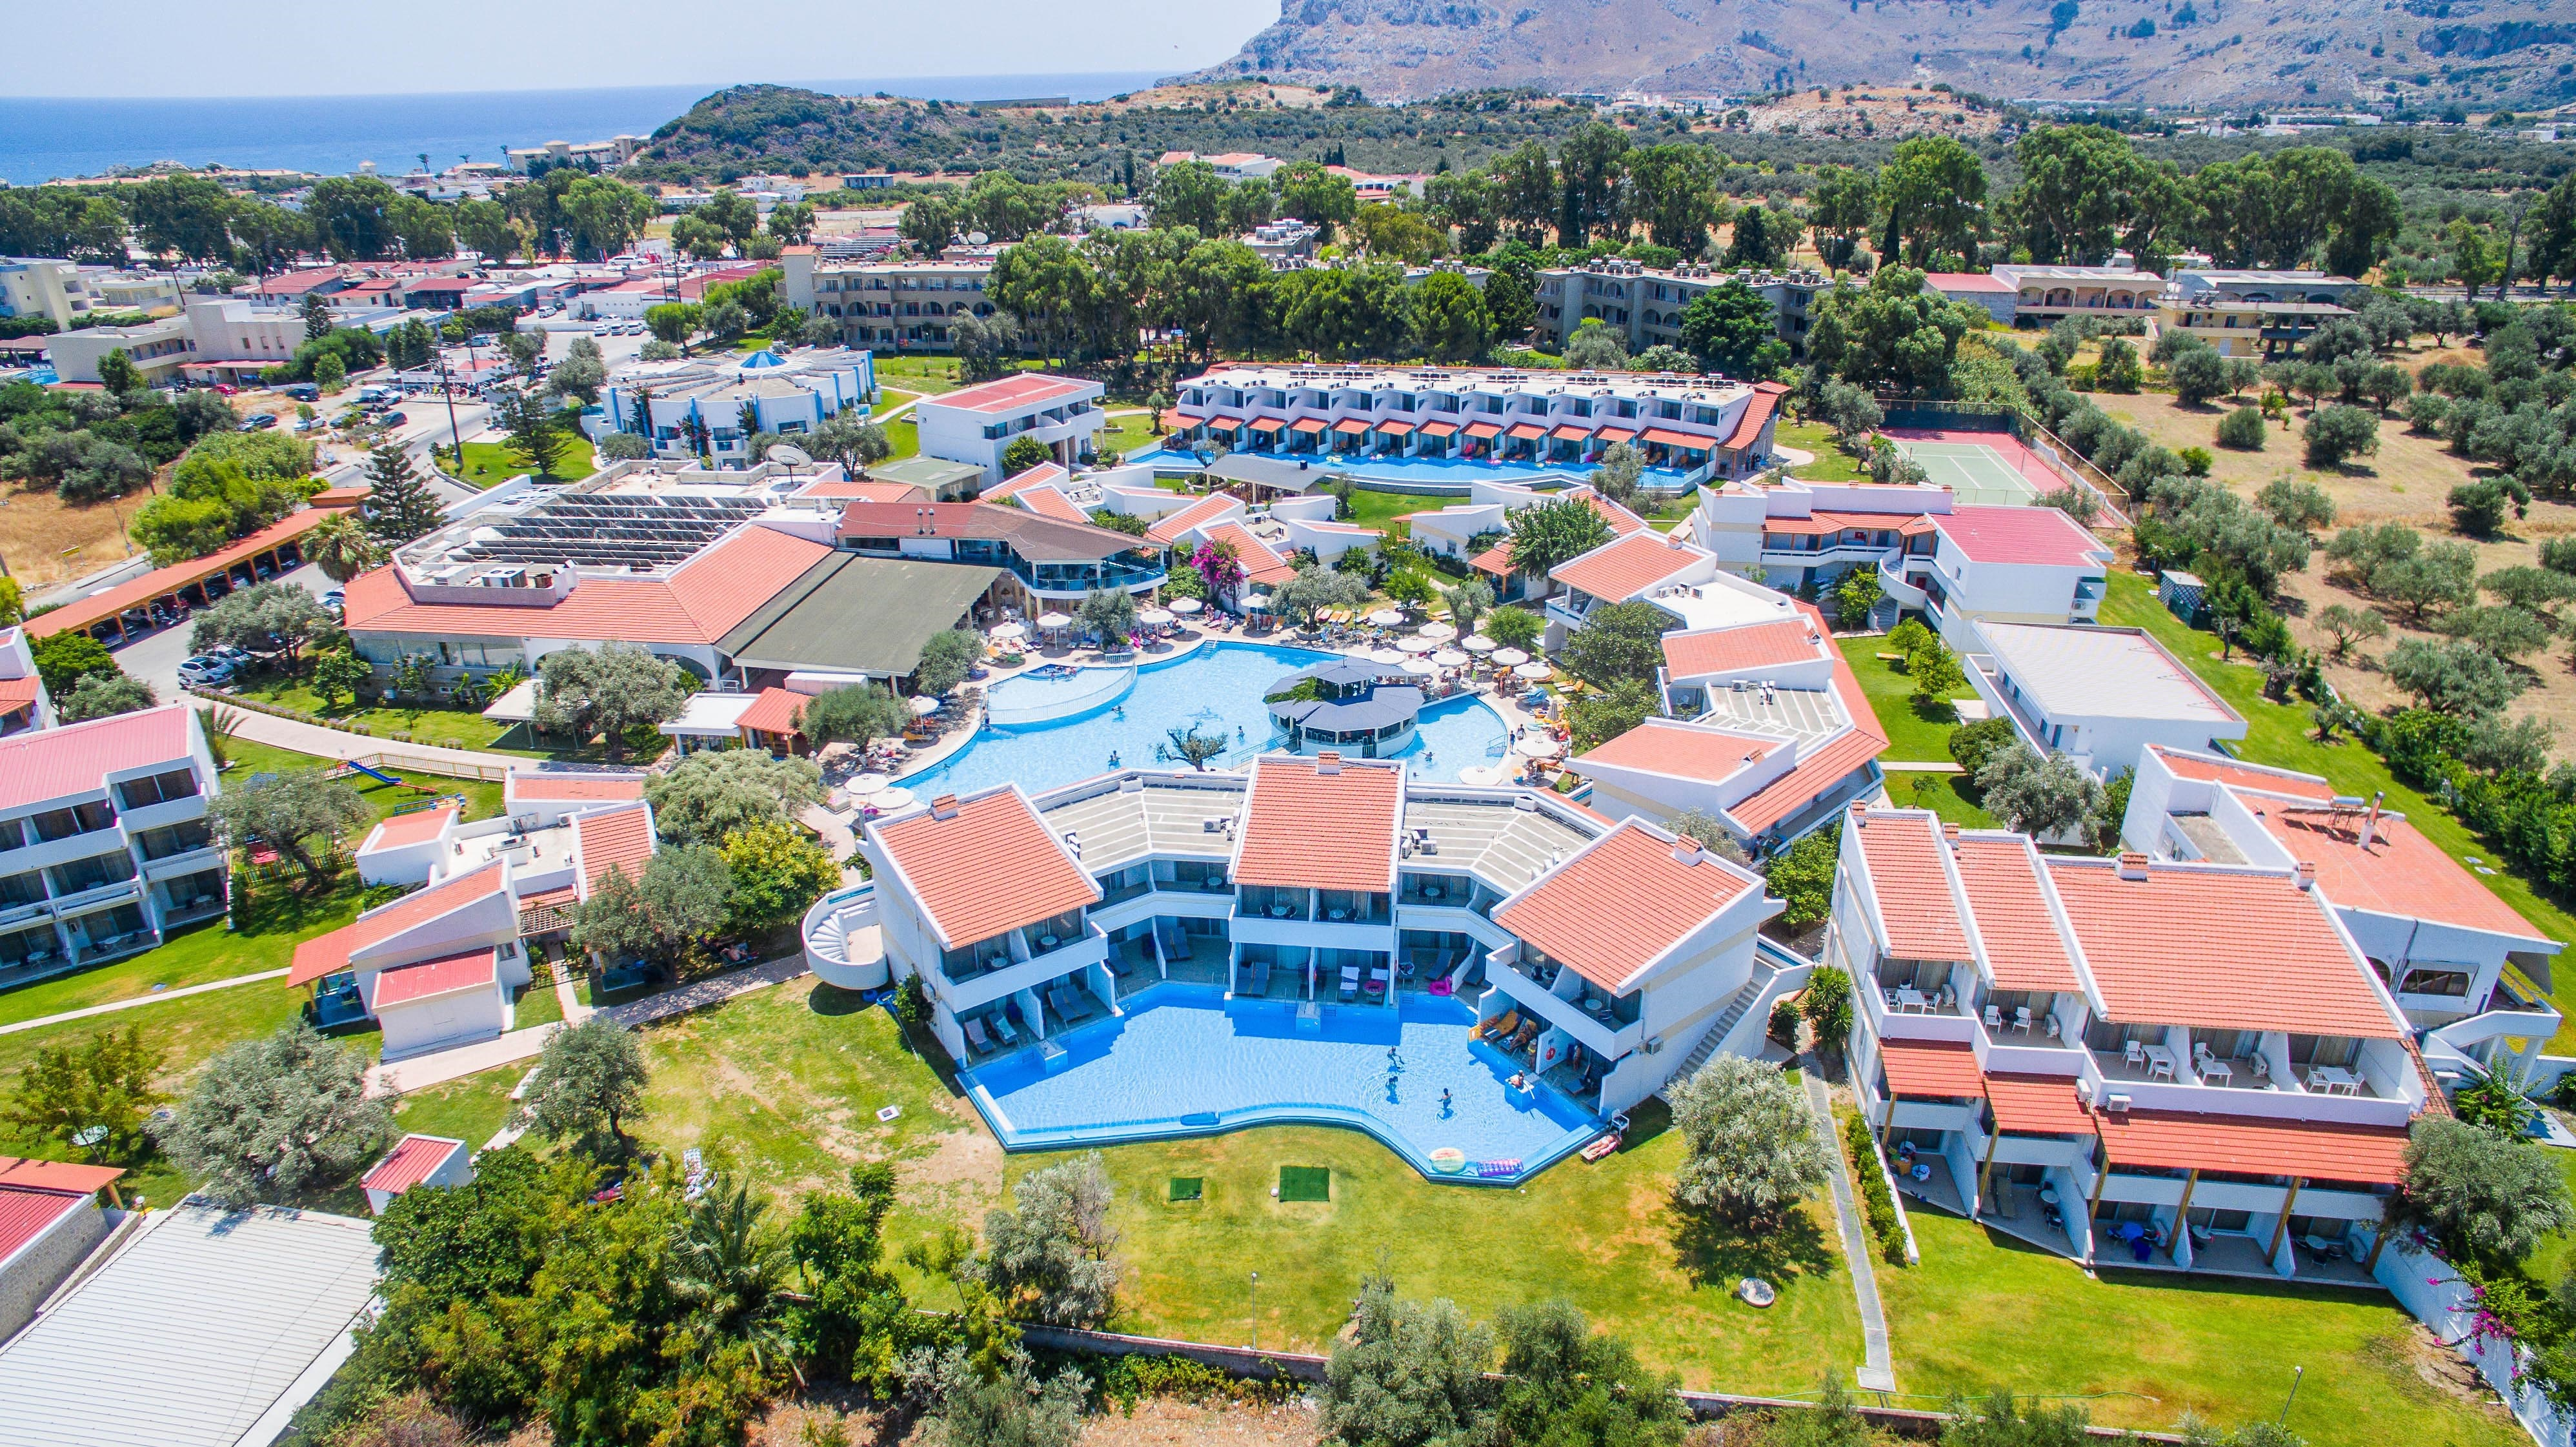 All Inclusive Sun Holidays to Lydia Maris Hotel